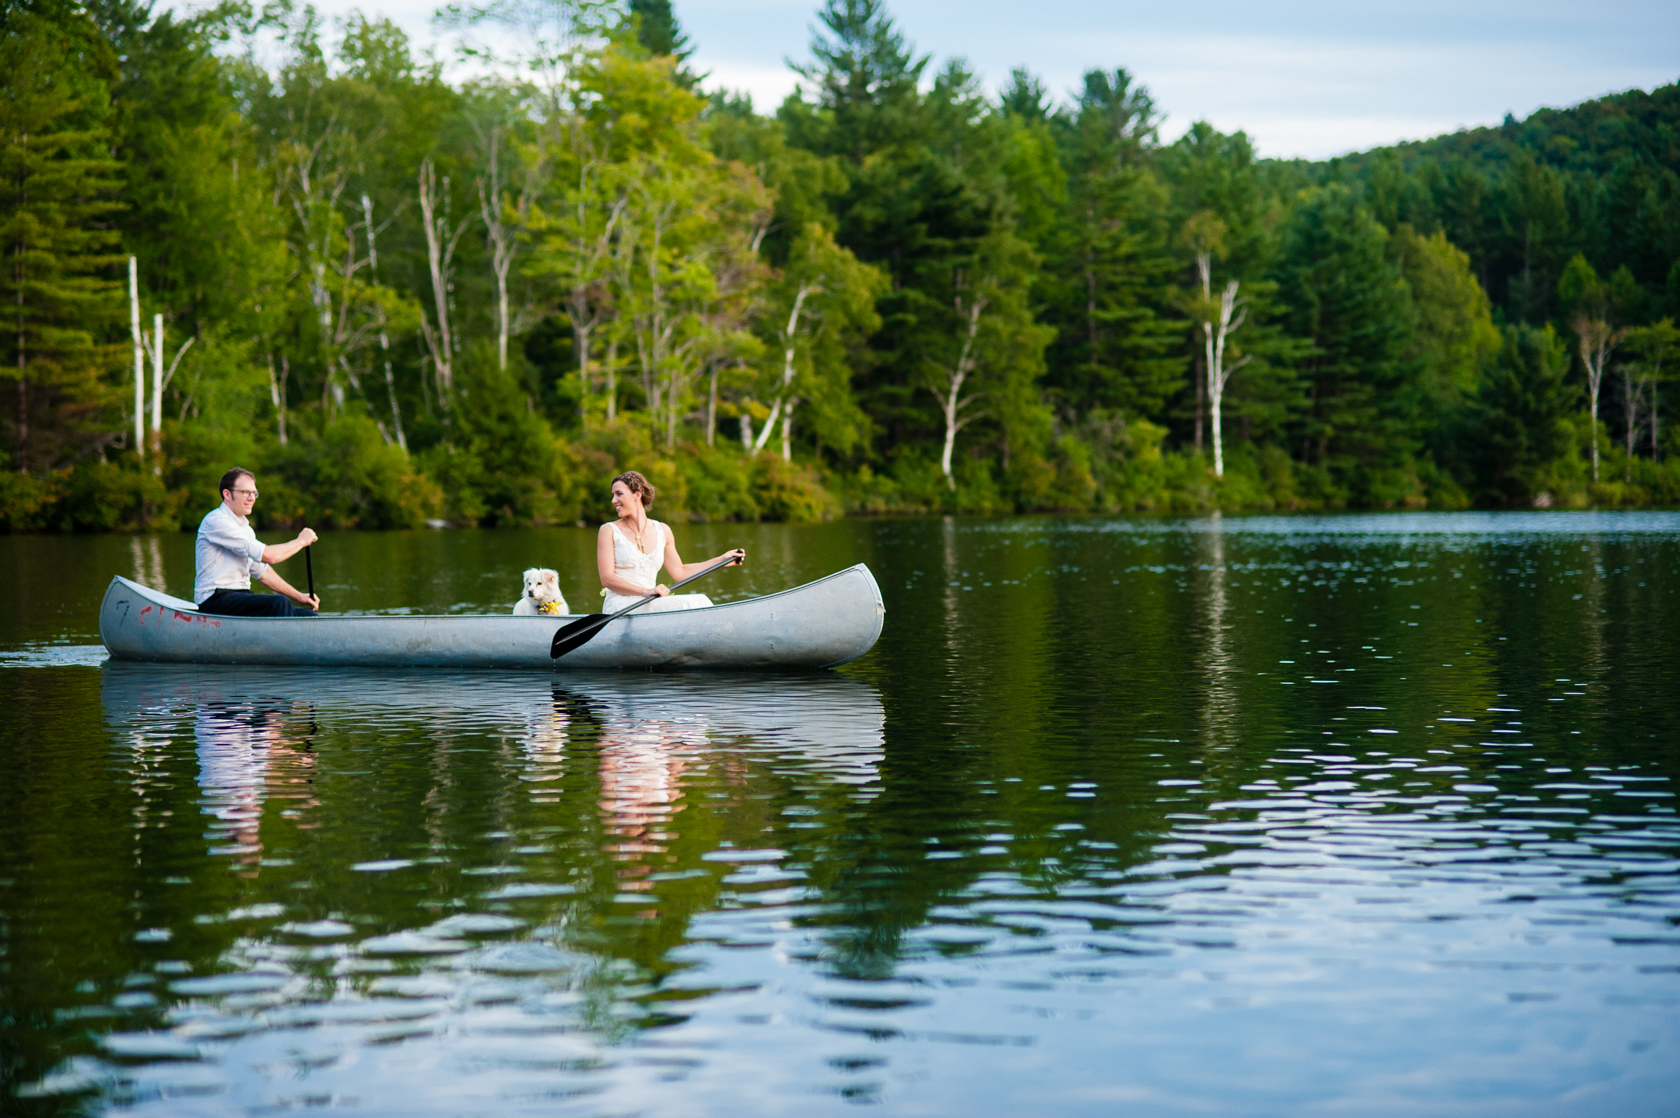 bride and groom adventure out on the lake in a canoe